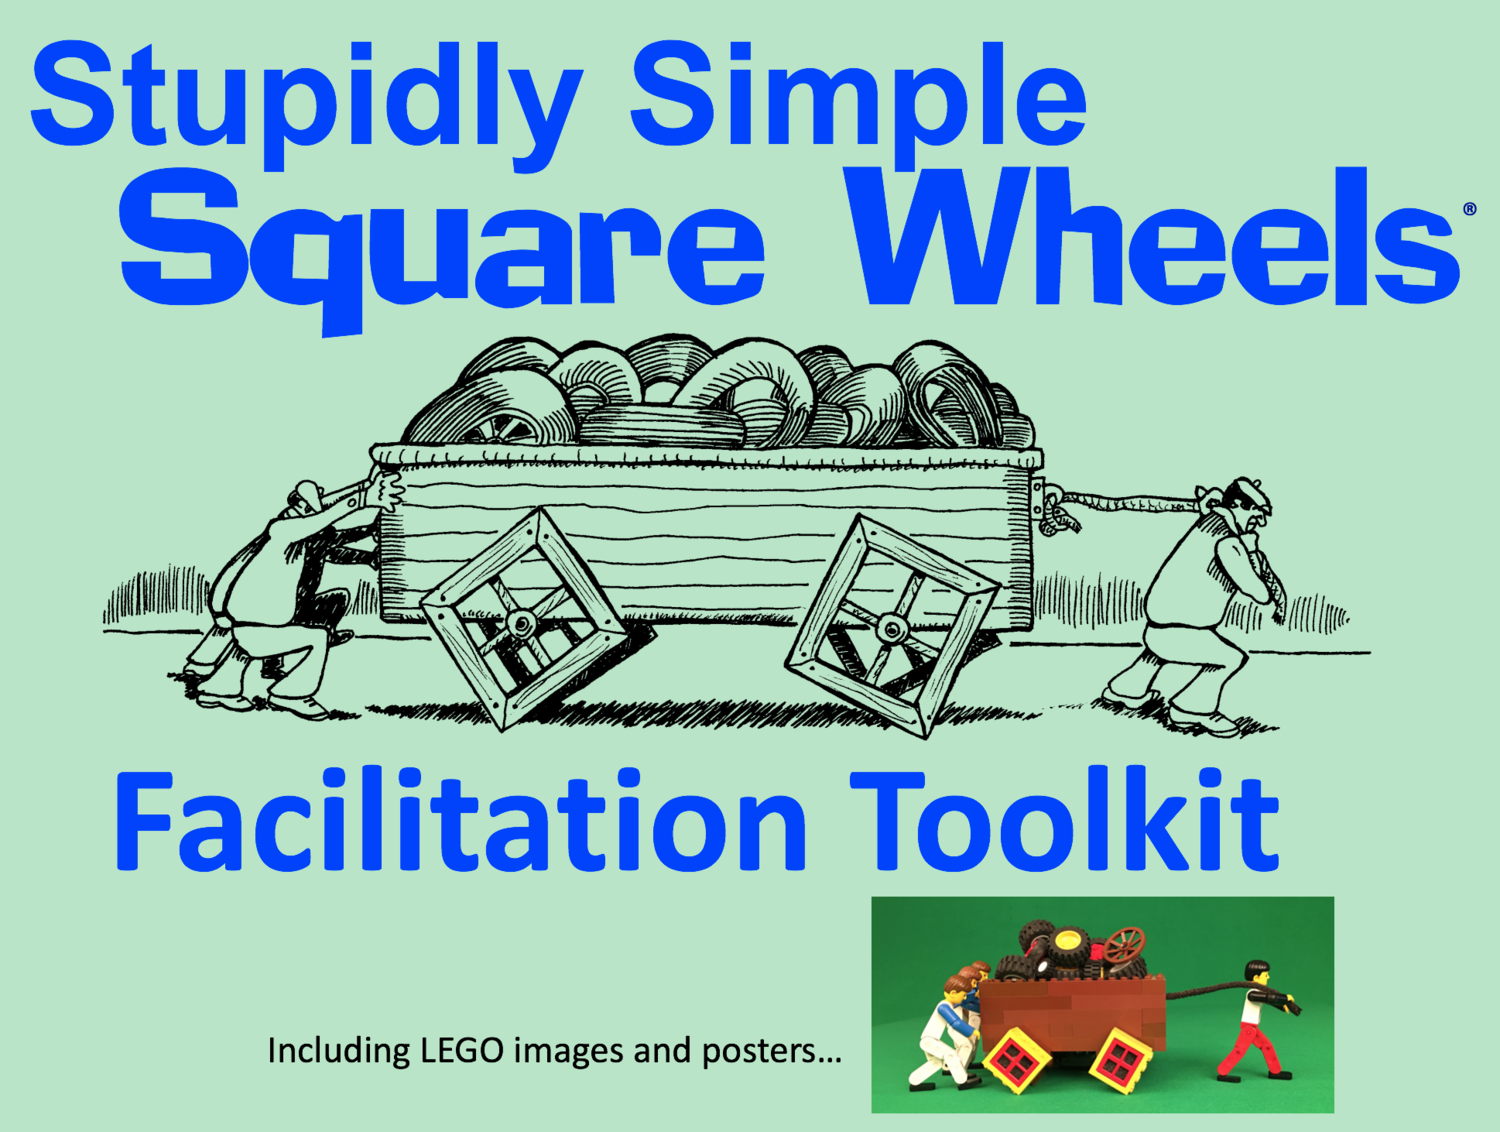 STUPIDLY SIMPLE SQUARE WHEELS FACILITATION TOOLKIT